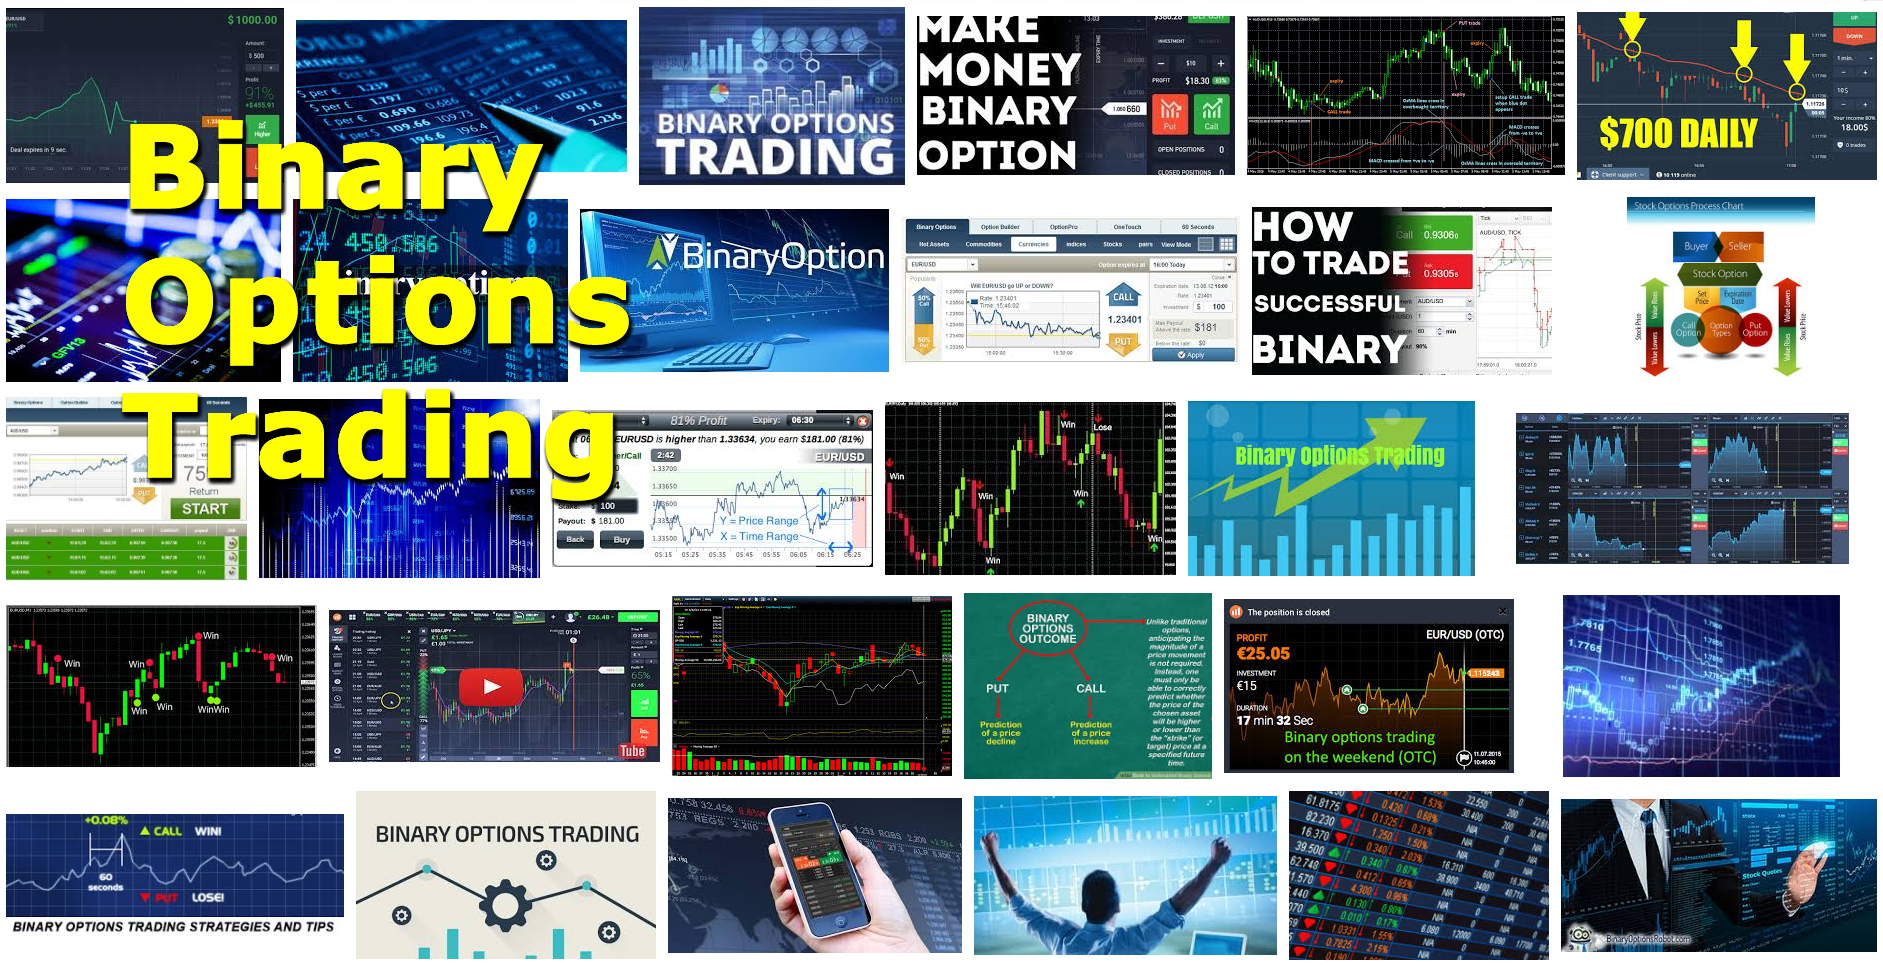 Where does the money come from in binary options